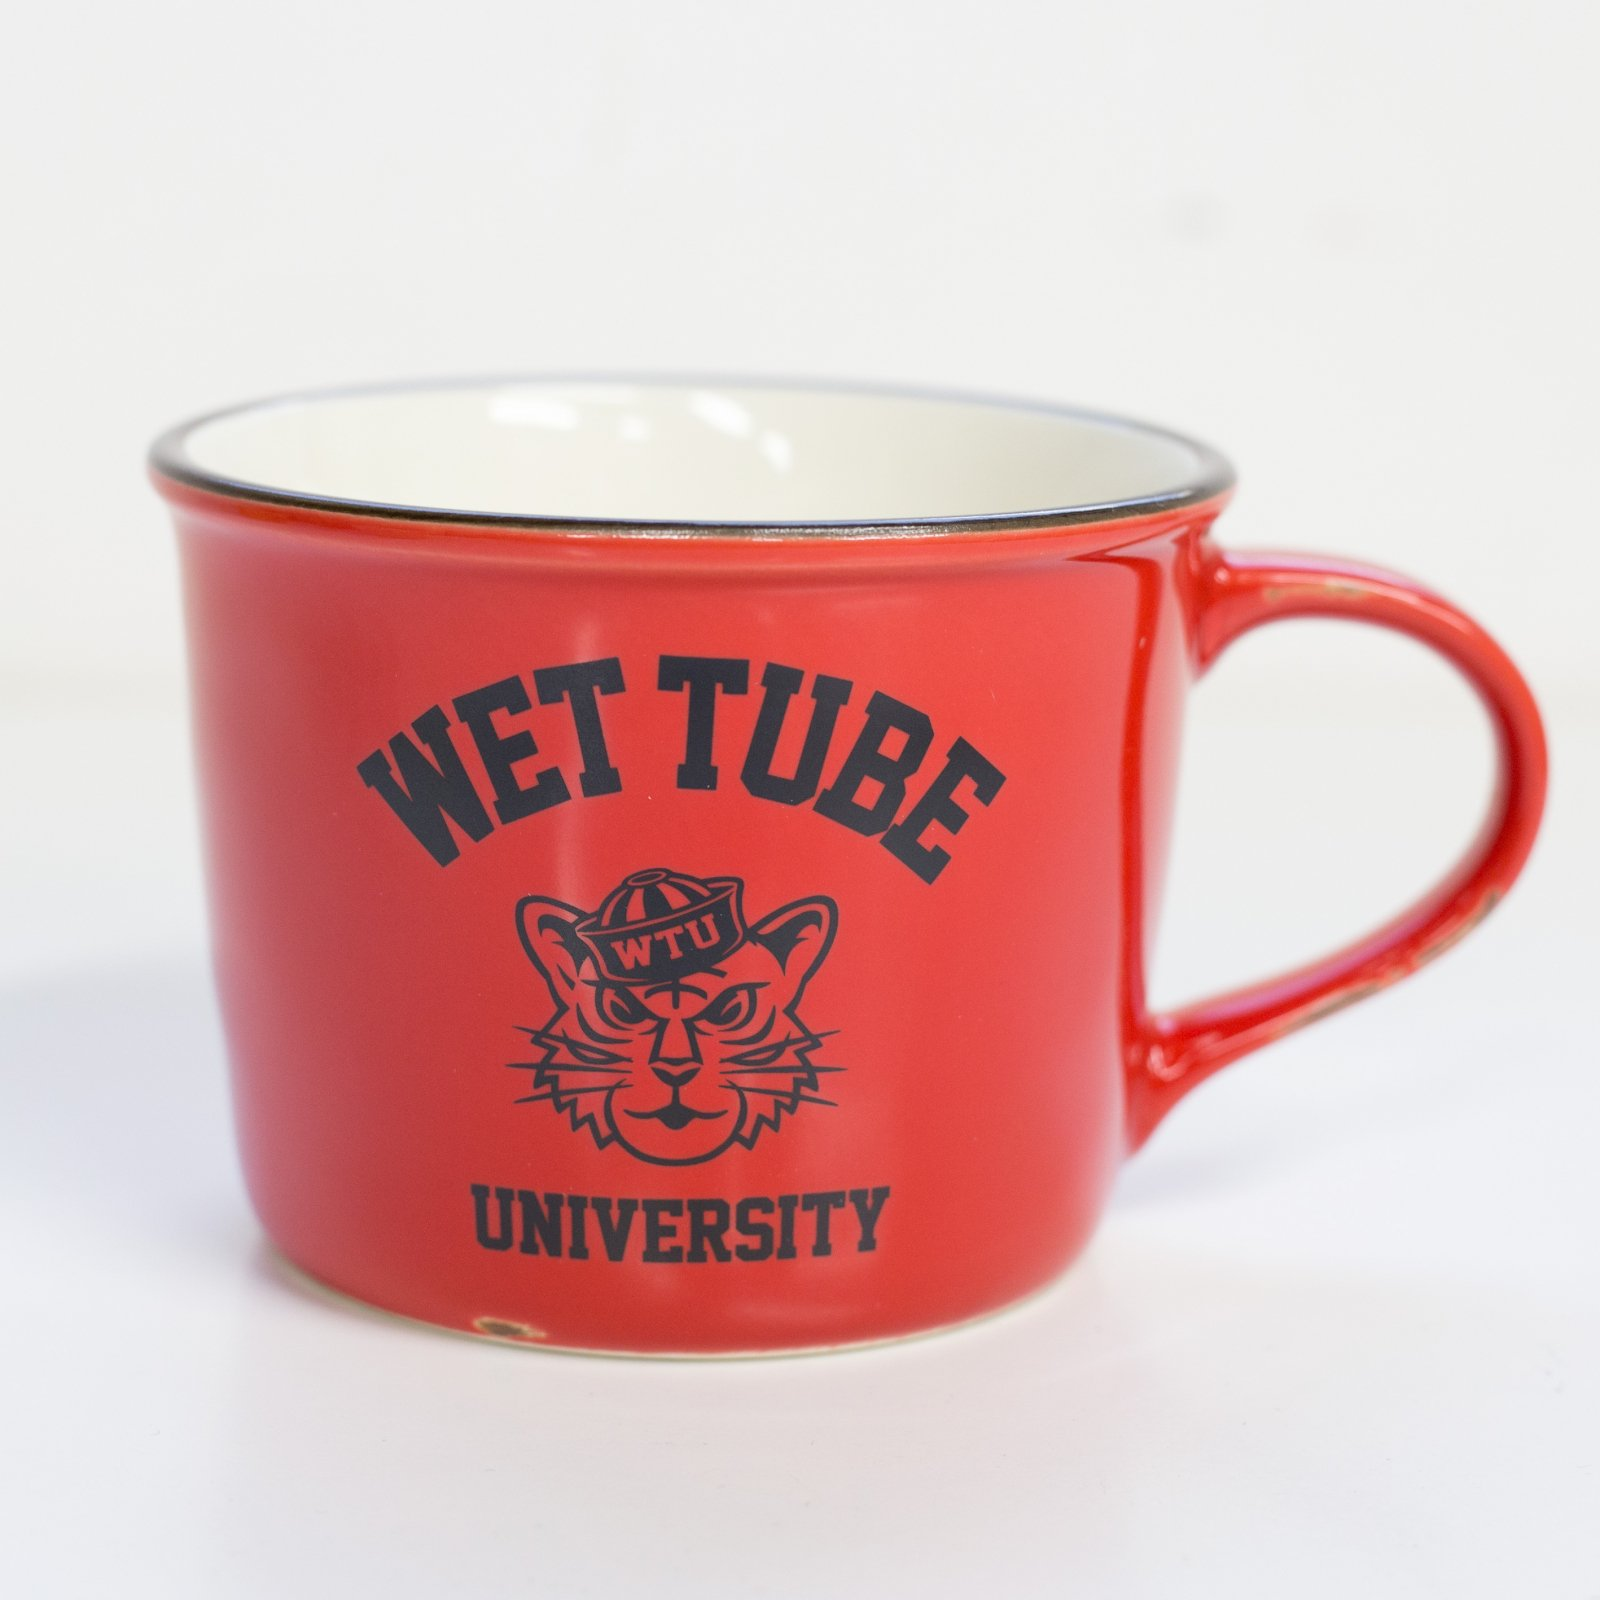 <img class='new_mark_img1' src='https://img.shop-pro.jp/img/new/icons14.gif' style='border:none;display:inline;margin:0px;padding:0px;width:auto;' />WET TUBE MUG CUP(RED)